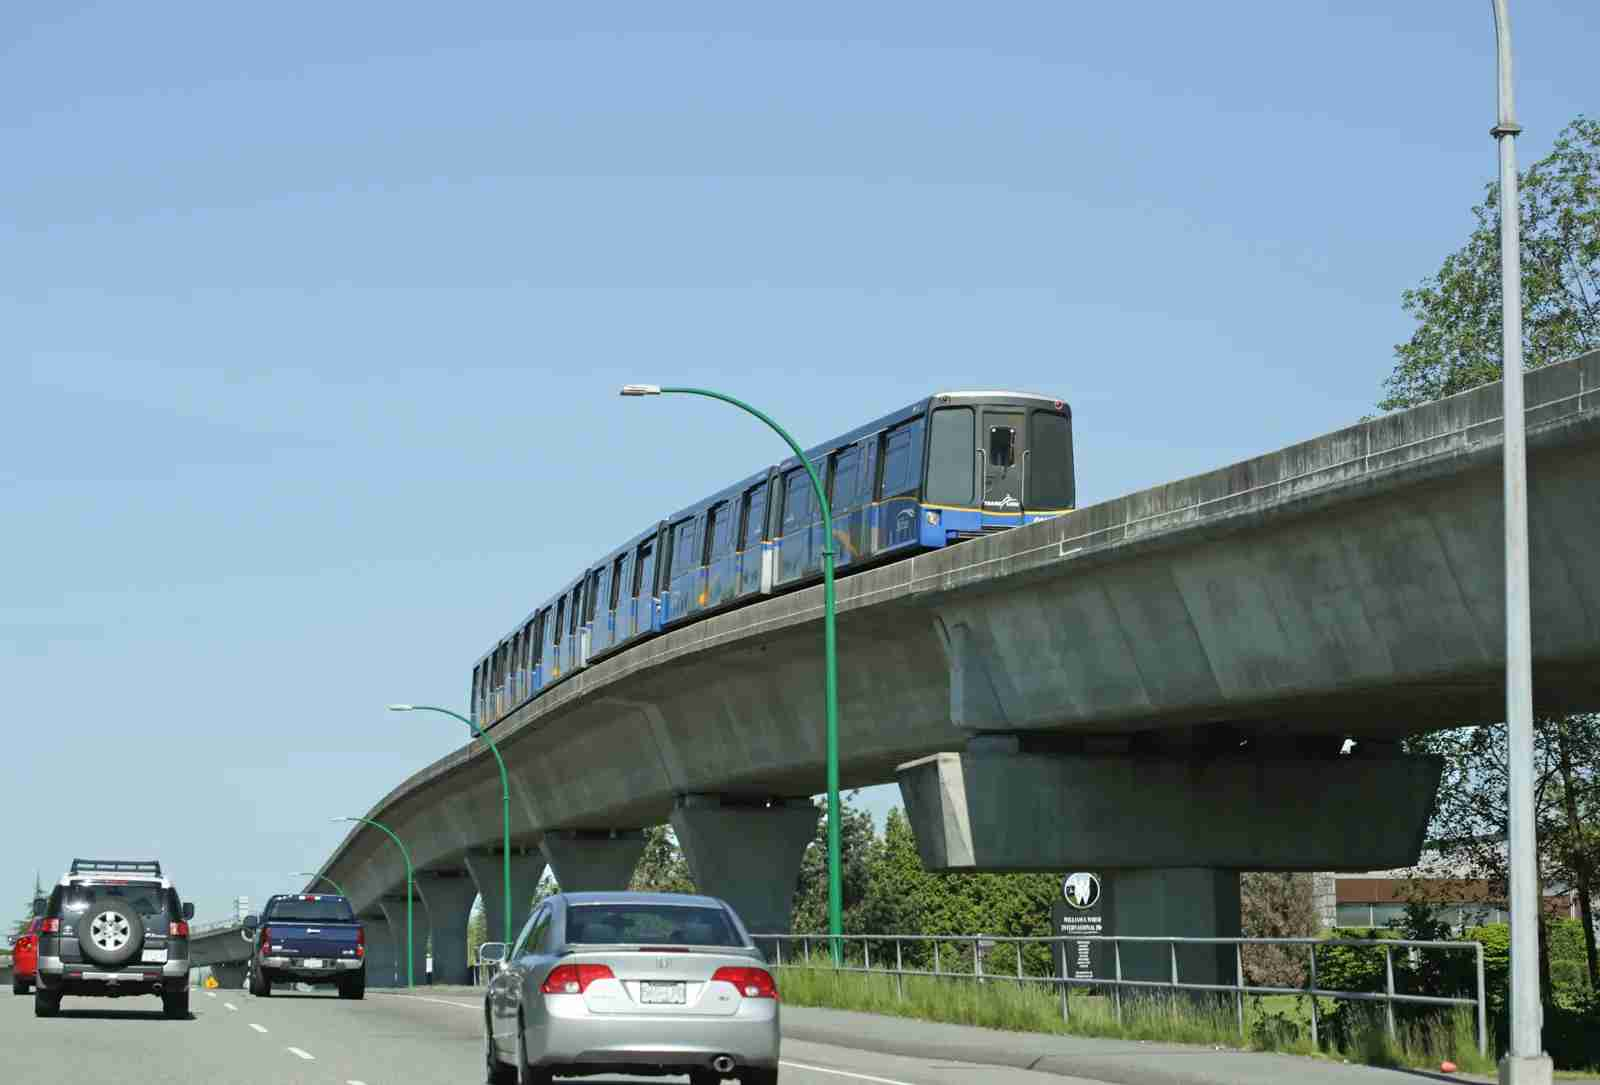 The TransLink SkyTrain carries transit passengers through Metro Vancouver. (Photo by KathrynHatashitaLee / Getty Images)